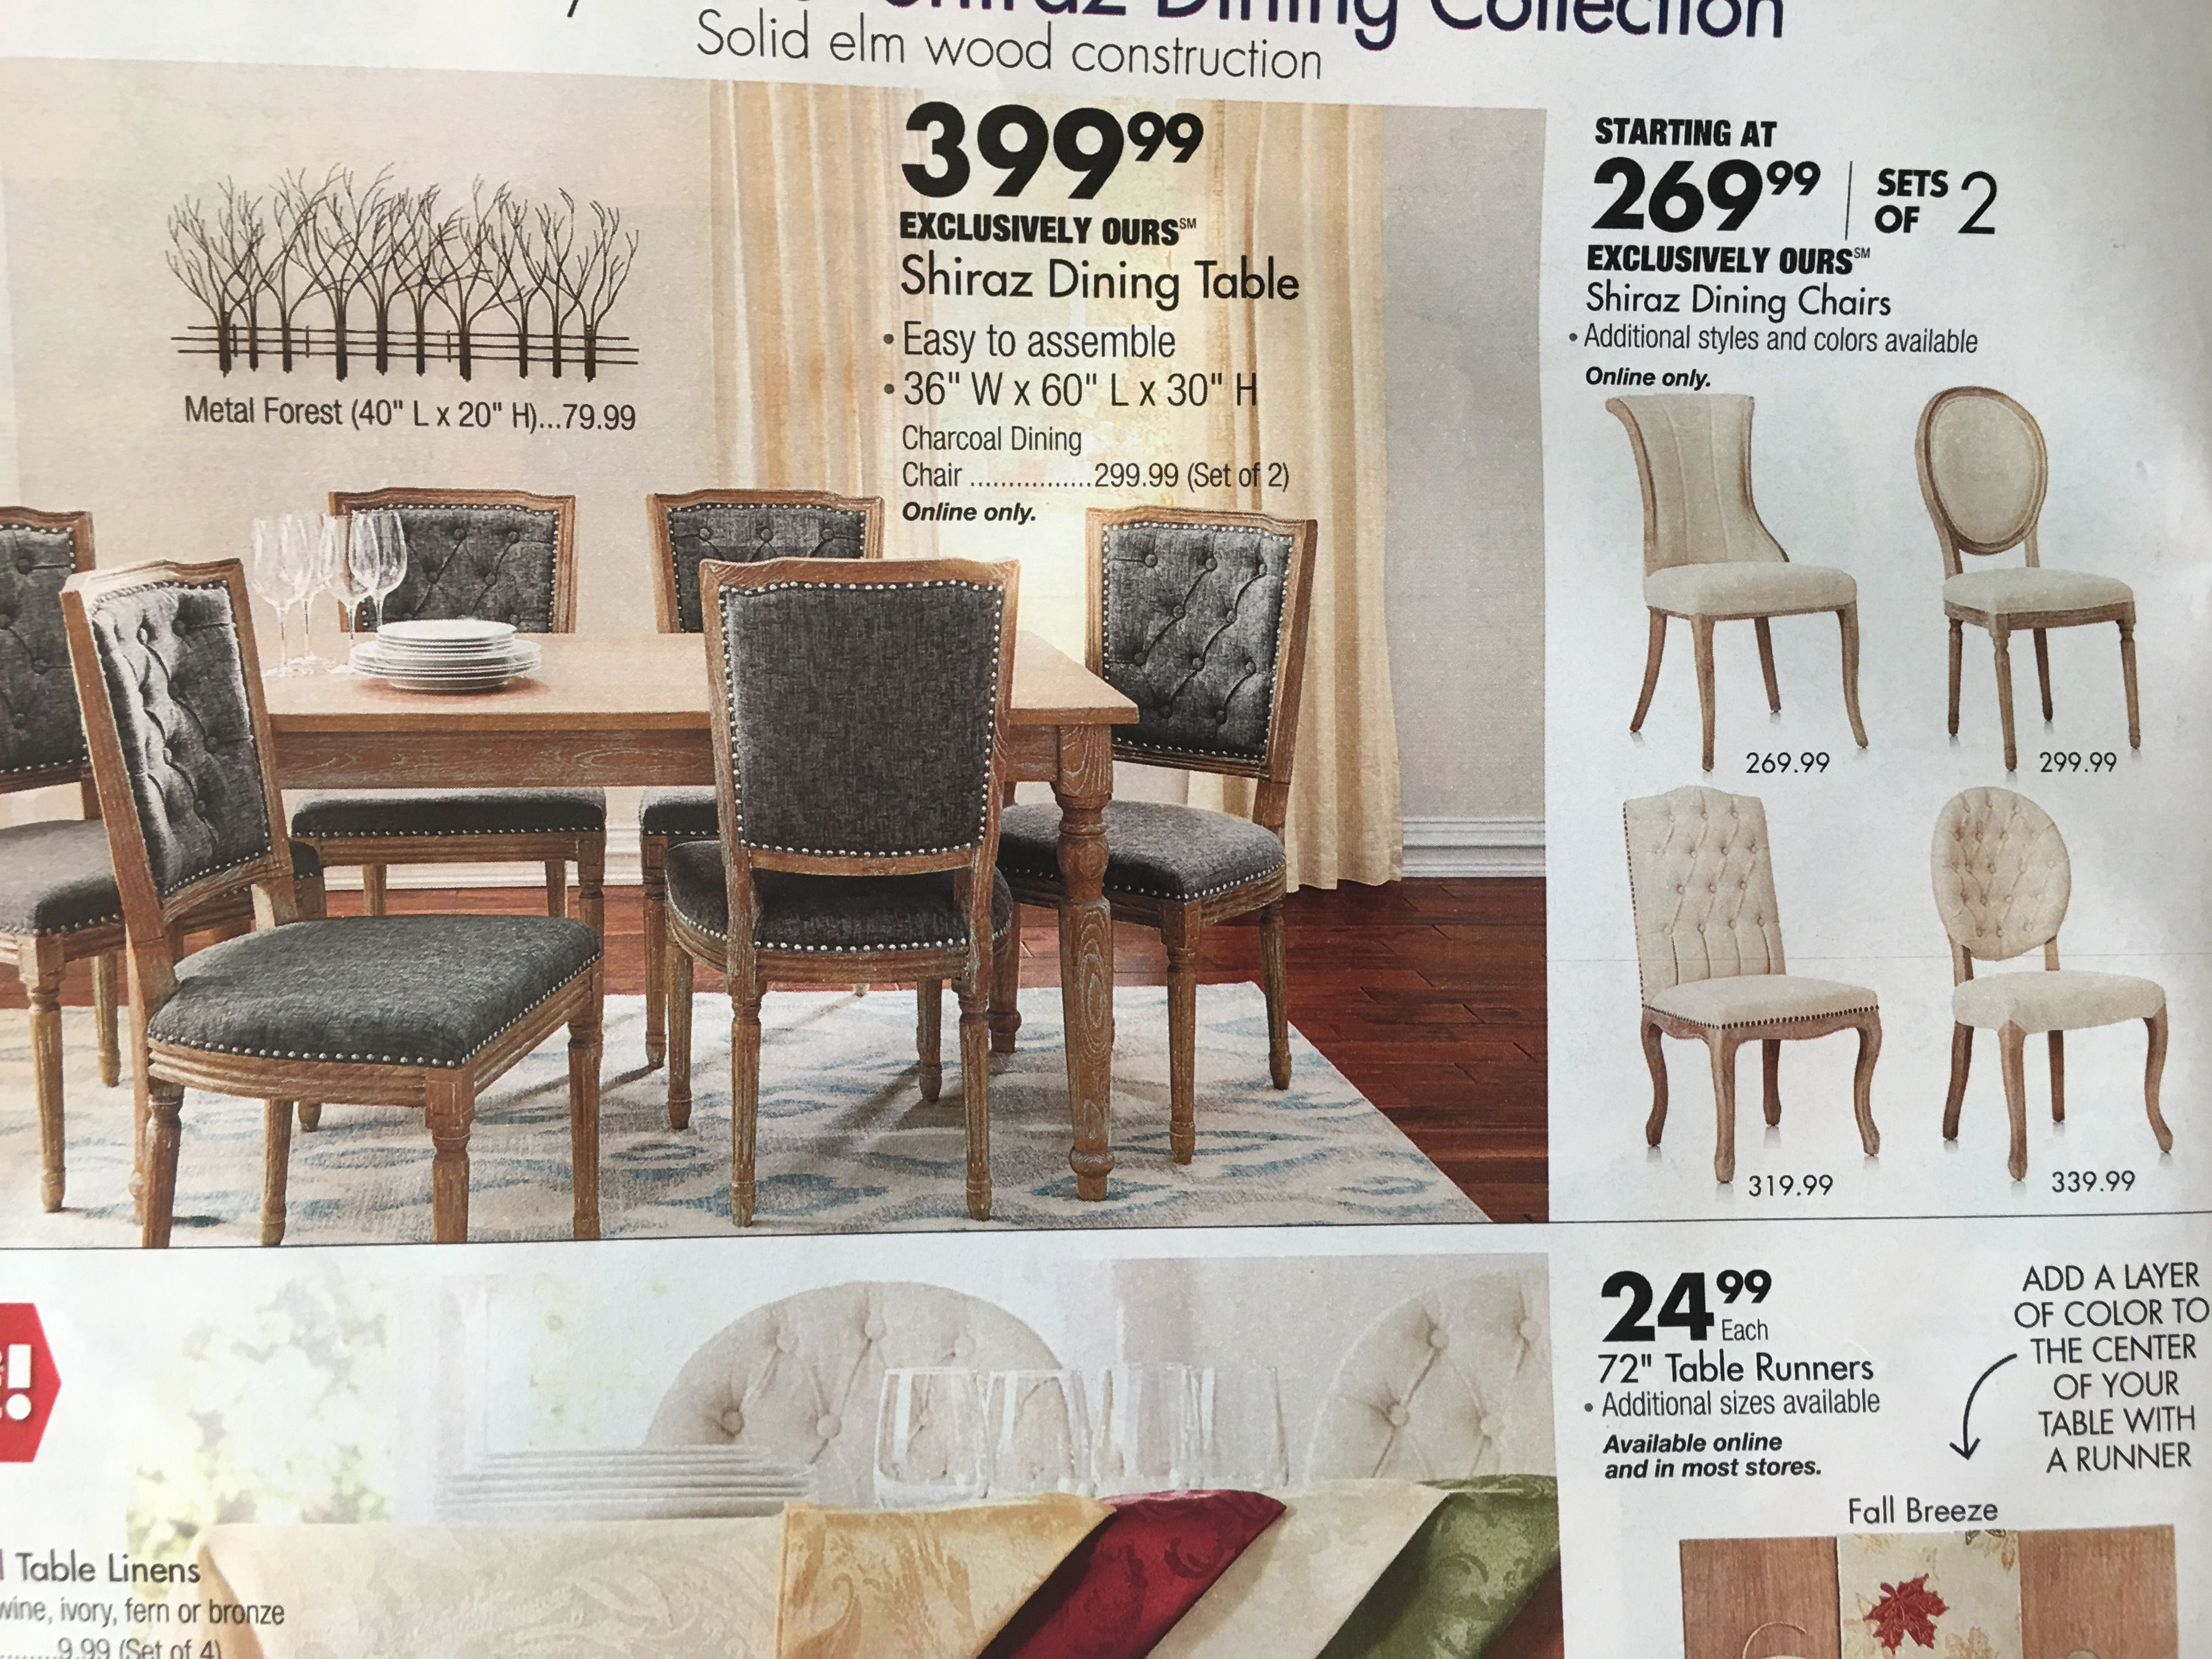 Dining Room Chairs From Bed Bath And Beyond